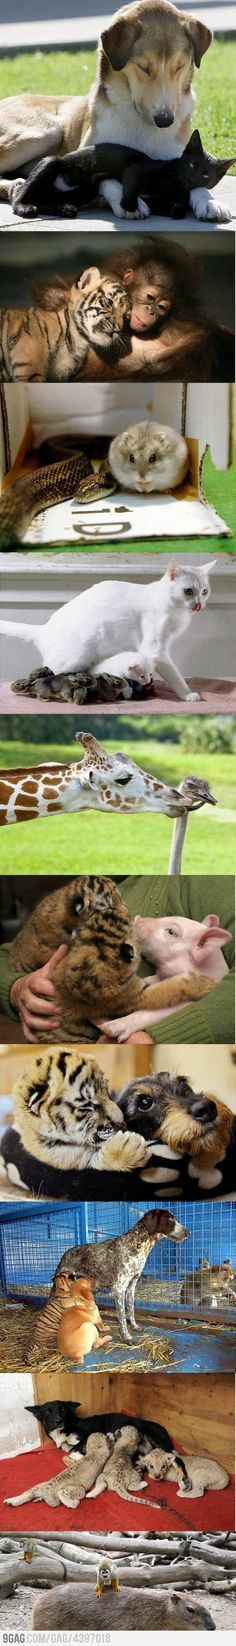 Some Unexpected Friendships between different babies animals so cute And I want them all